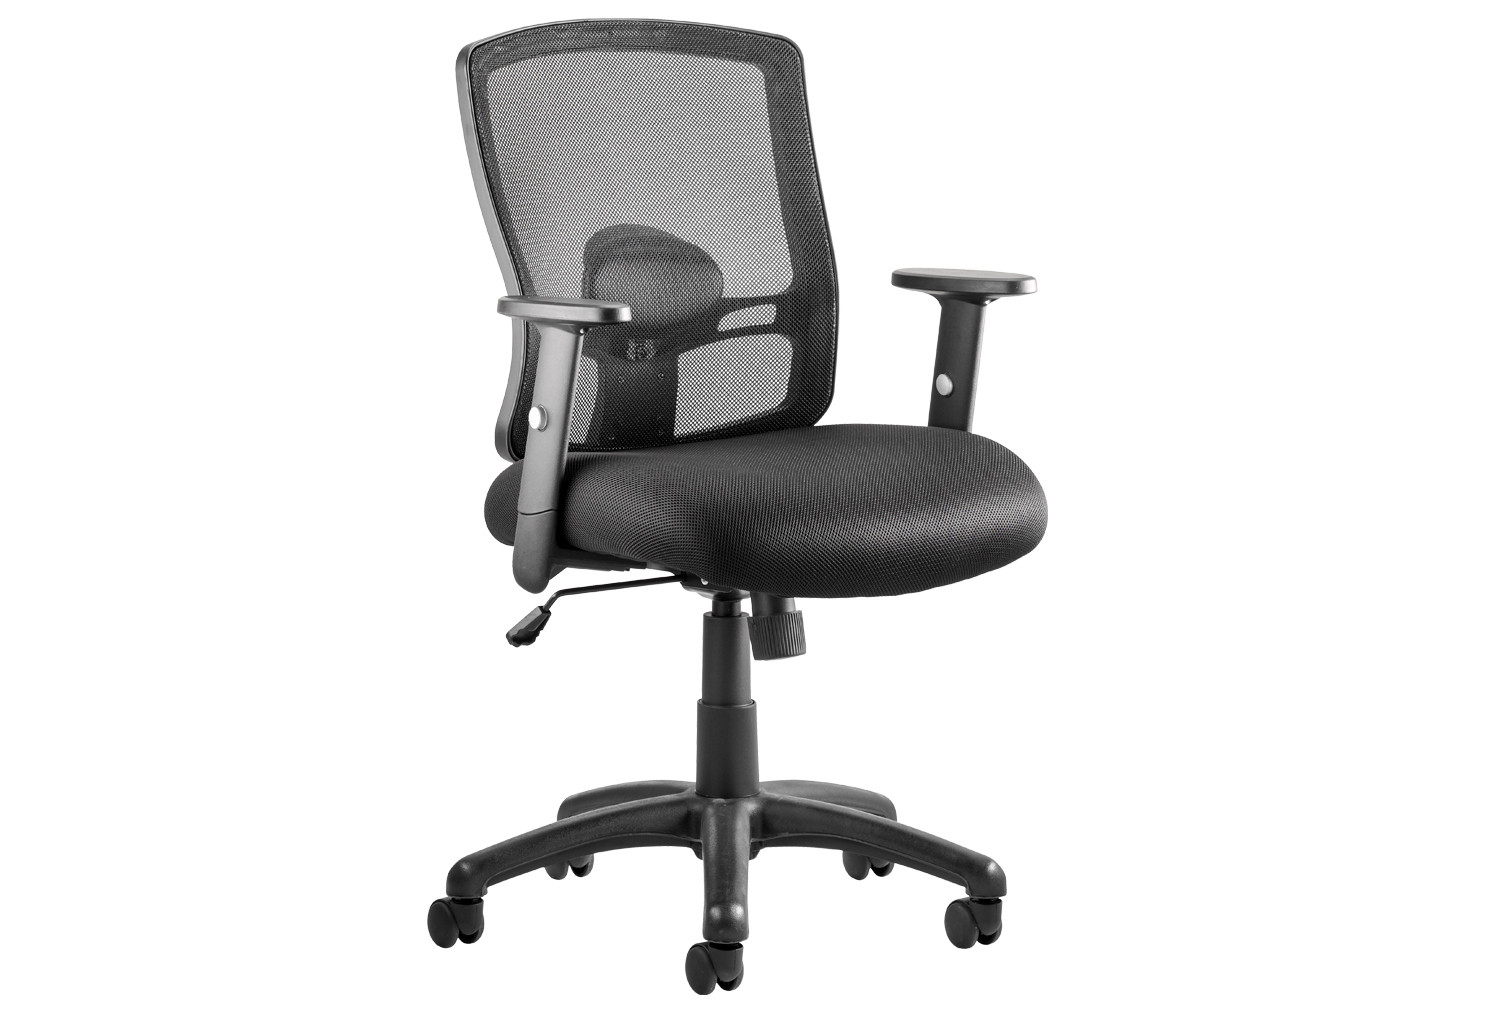 Next-Day Belarus 1 Lever Mesh Back Operator Chair